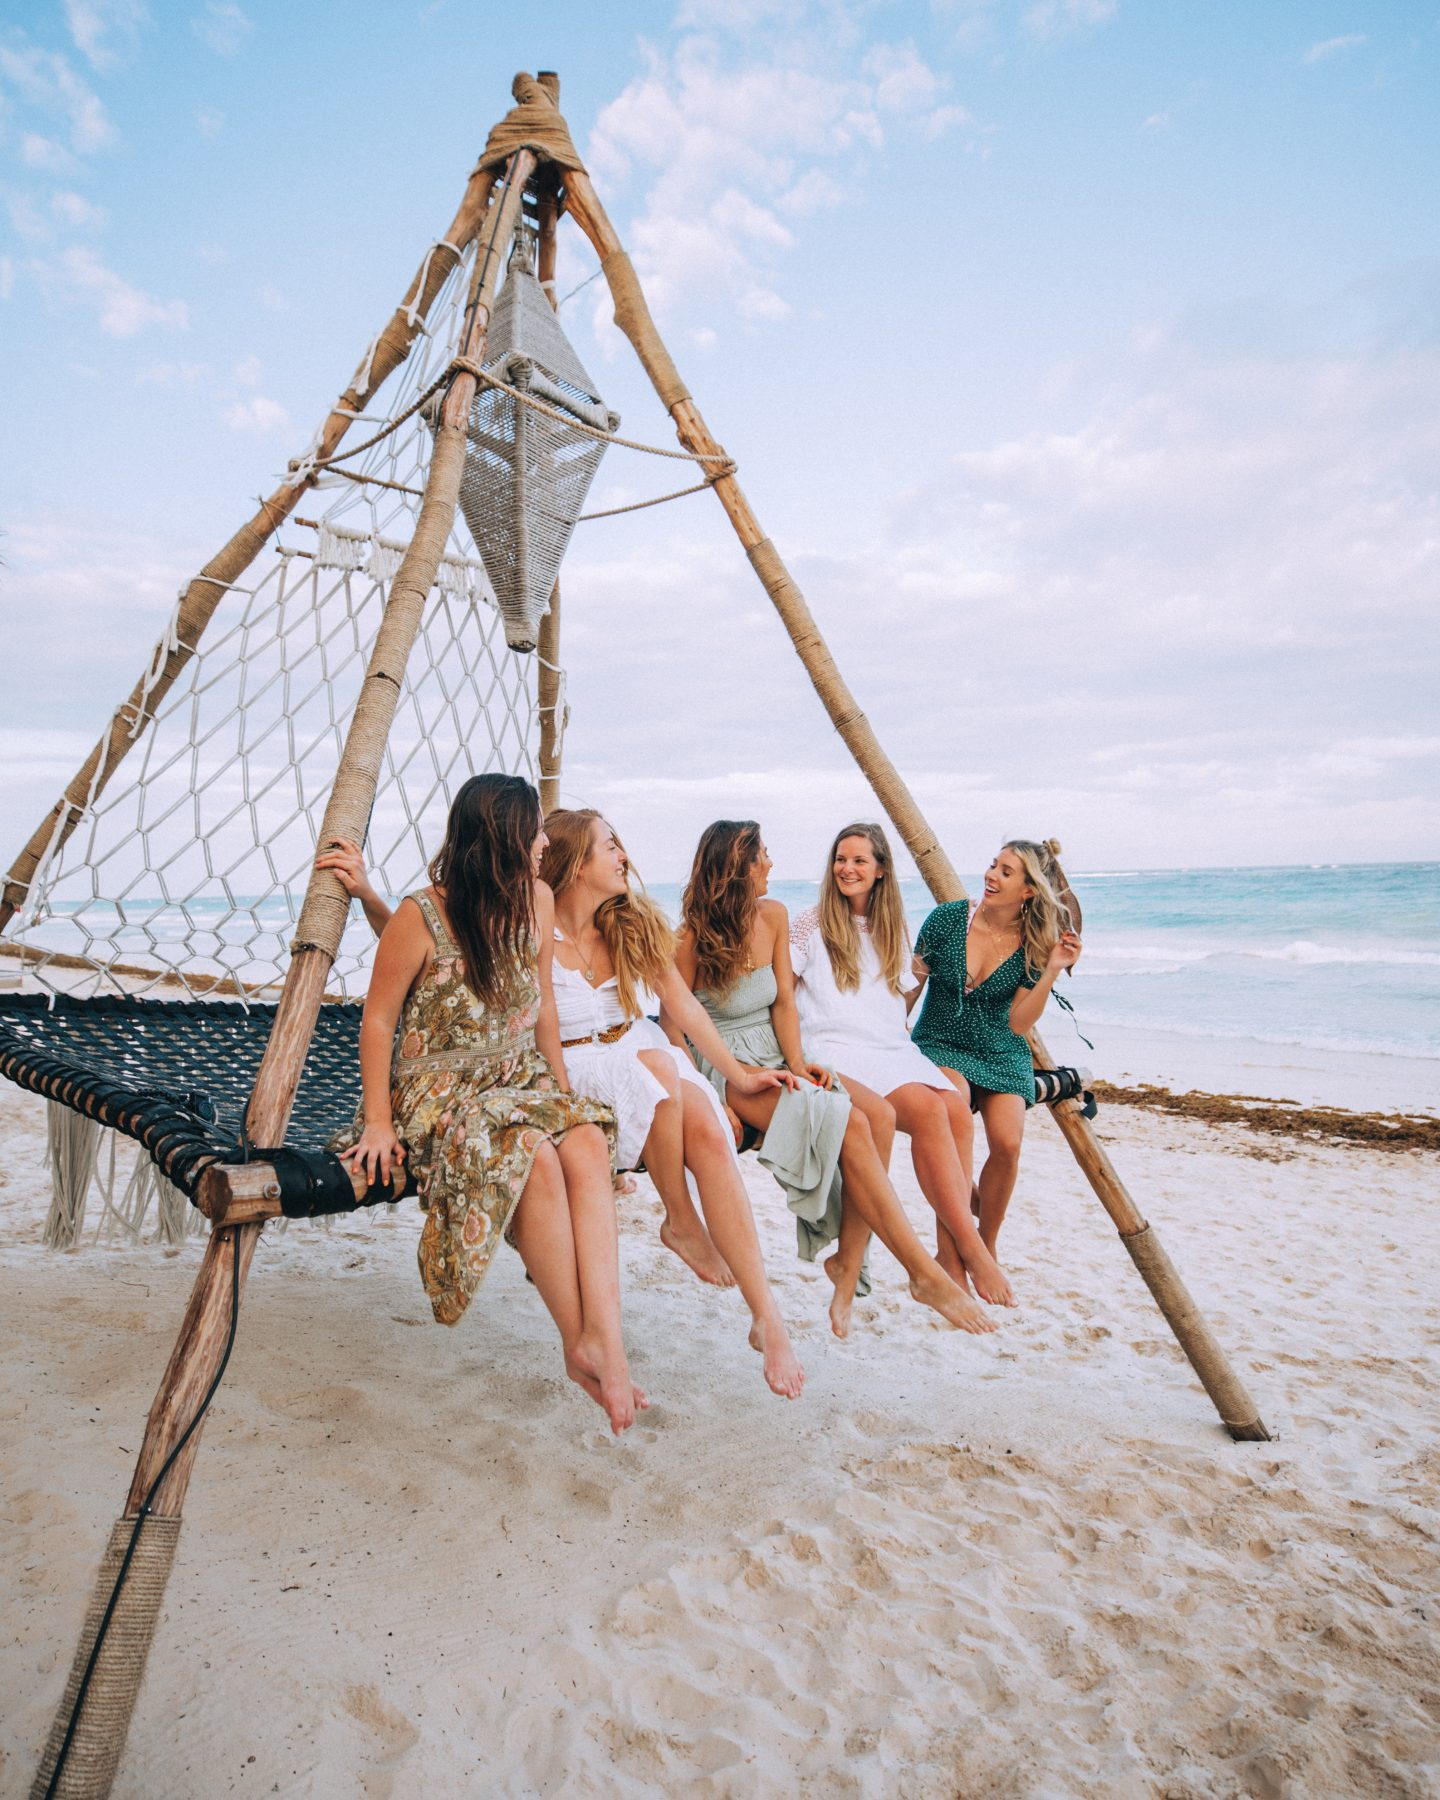 Girls trip to Tulum on the beach